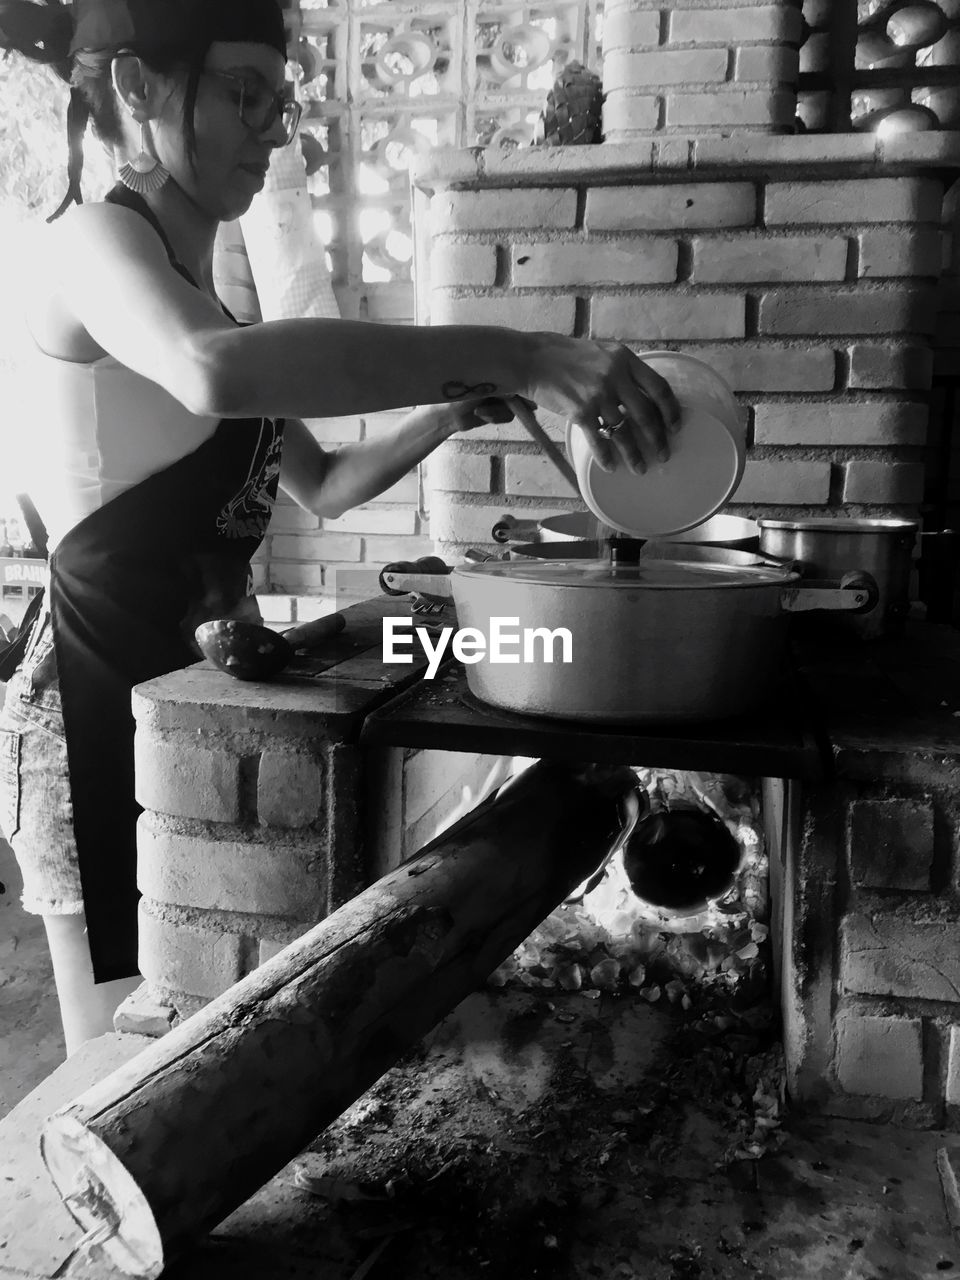 preparation, stove, preparing food, indoors, food and drink, domestic kitchen, one person, real people, making, food, holding, human hand, domestic room, kitchen, freshness, chef, day, young women, camping stove, people